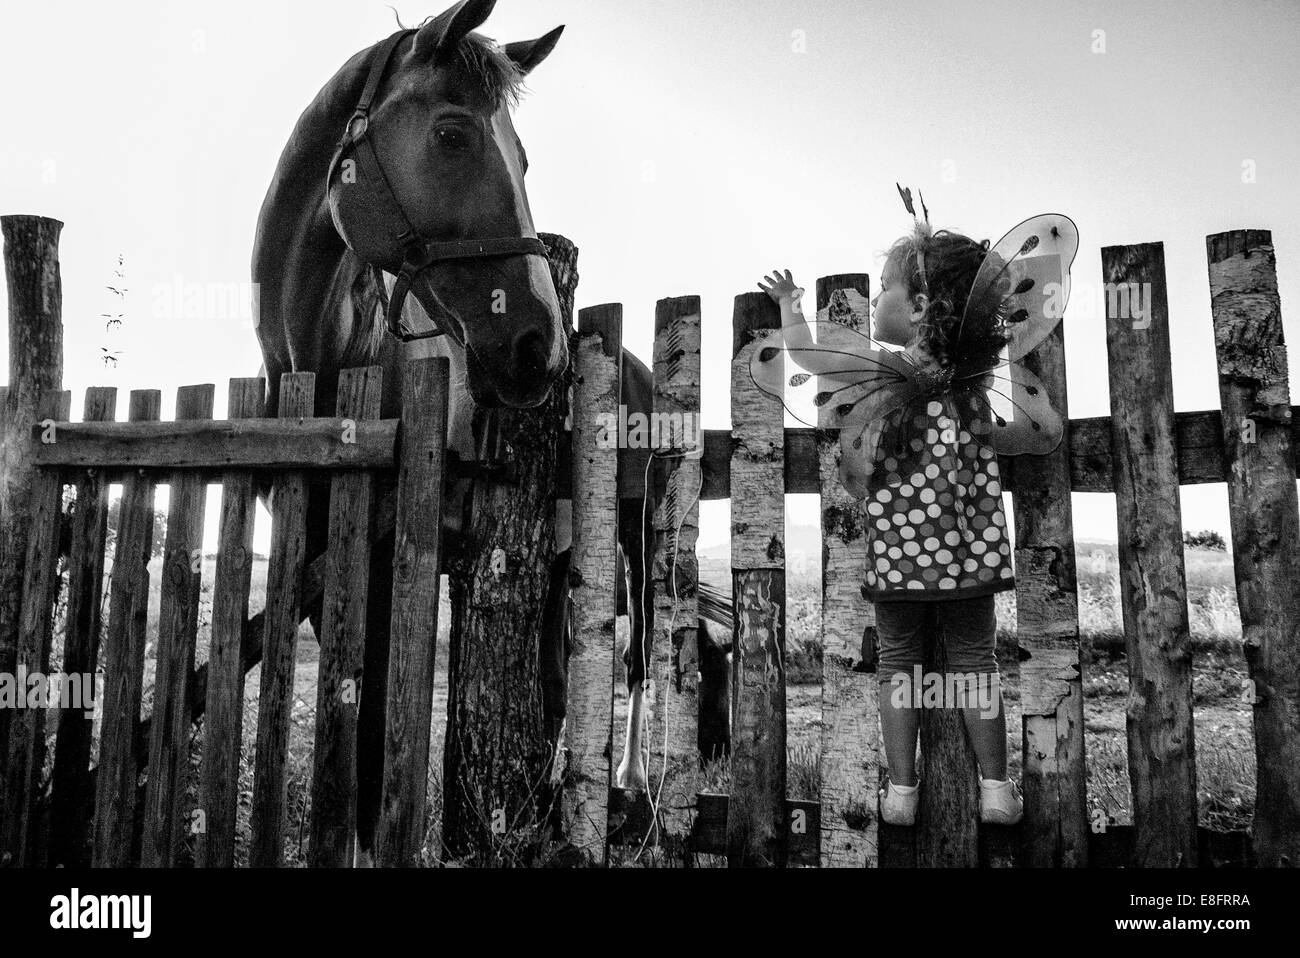 Girl (4-5) dressed as fairy looking at horse - Stock Image